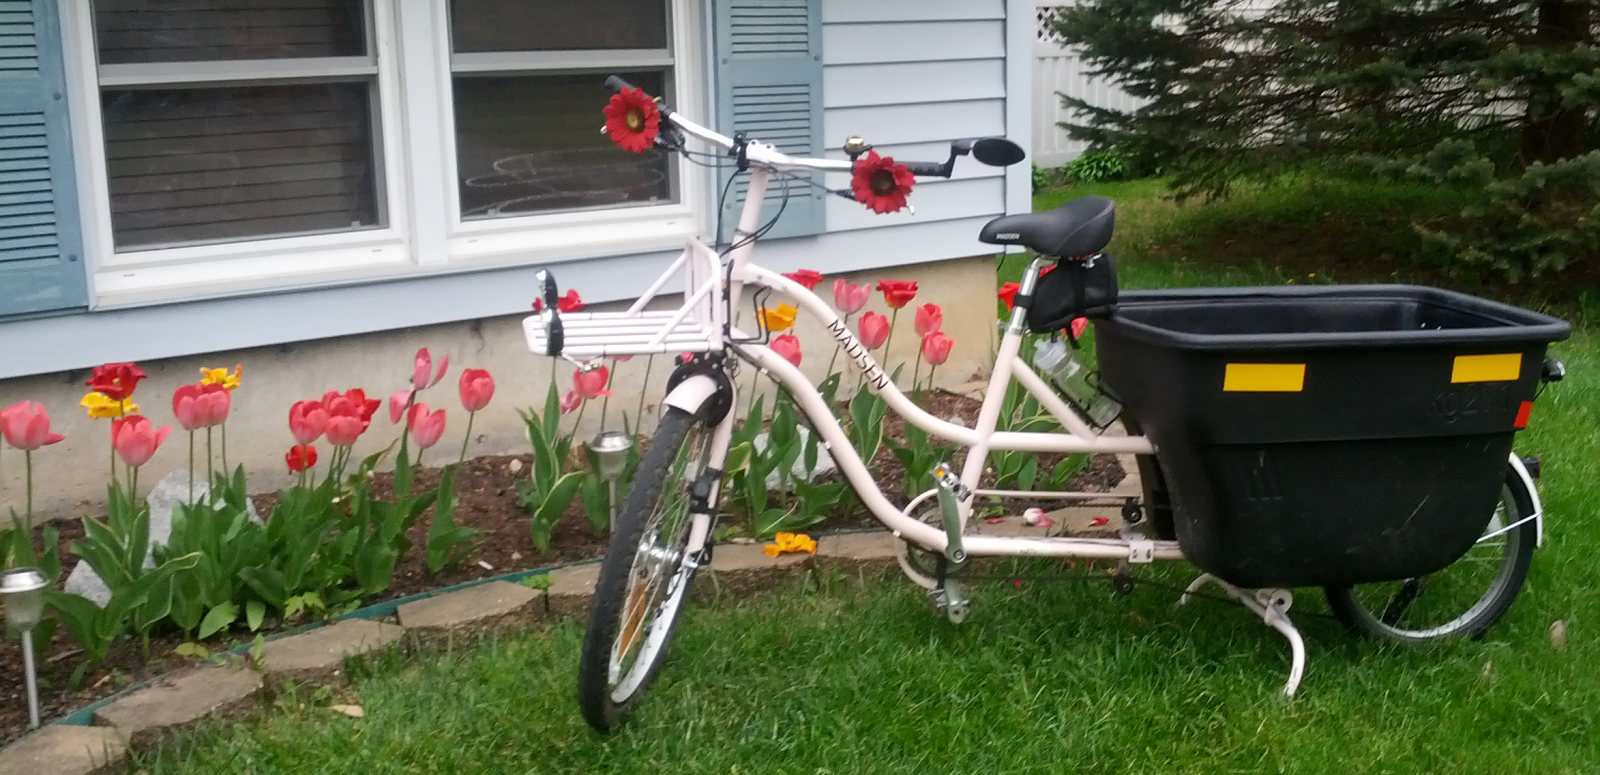 Pink Madsen kg271 bicycle with flowers on handlebars in front of a bed of tulips.